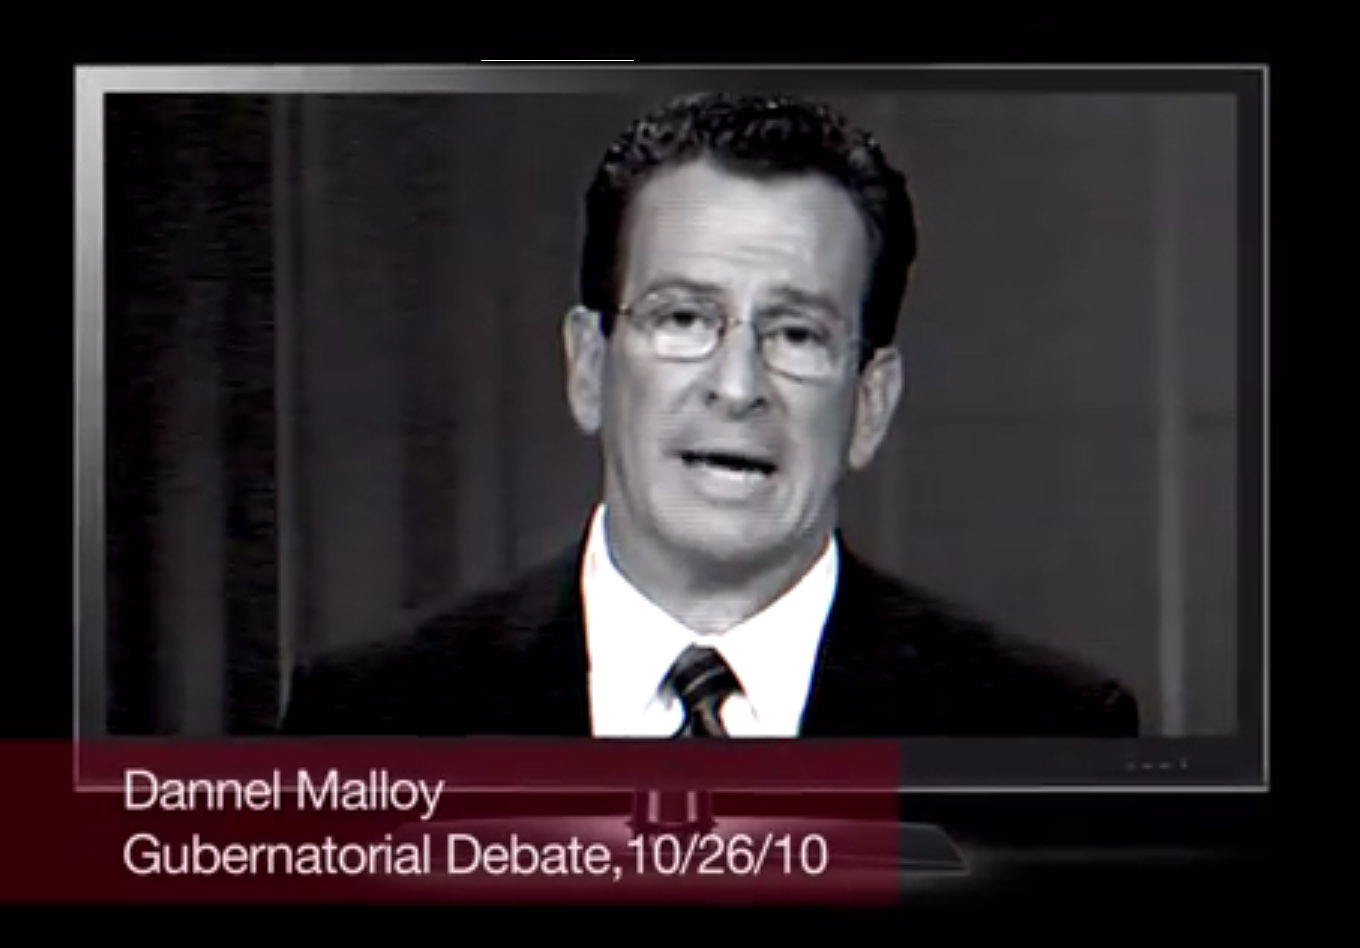 New ad revives Malloy's near-pledge to avoid tax hikes in 2010